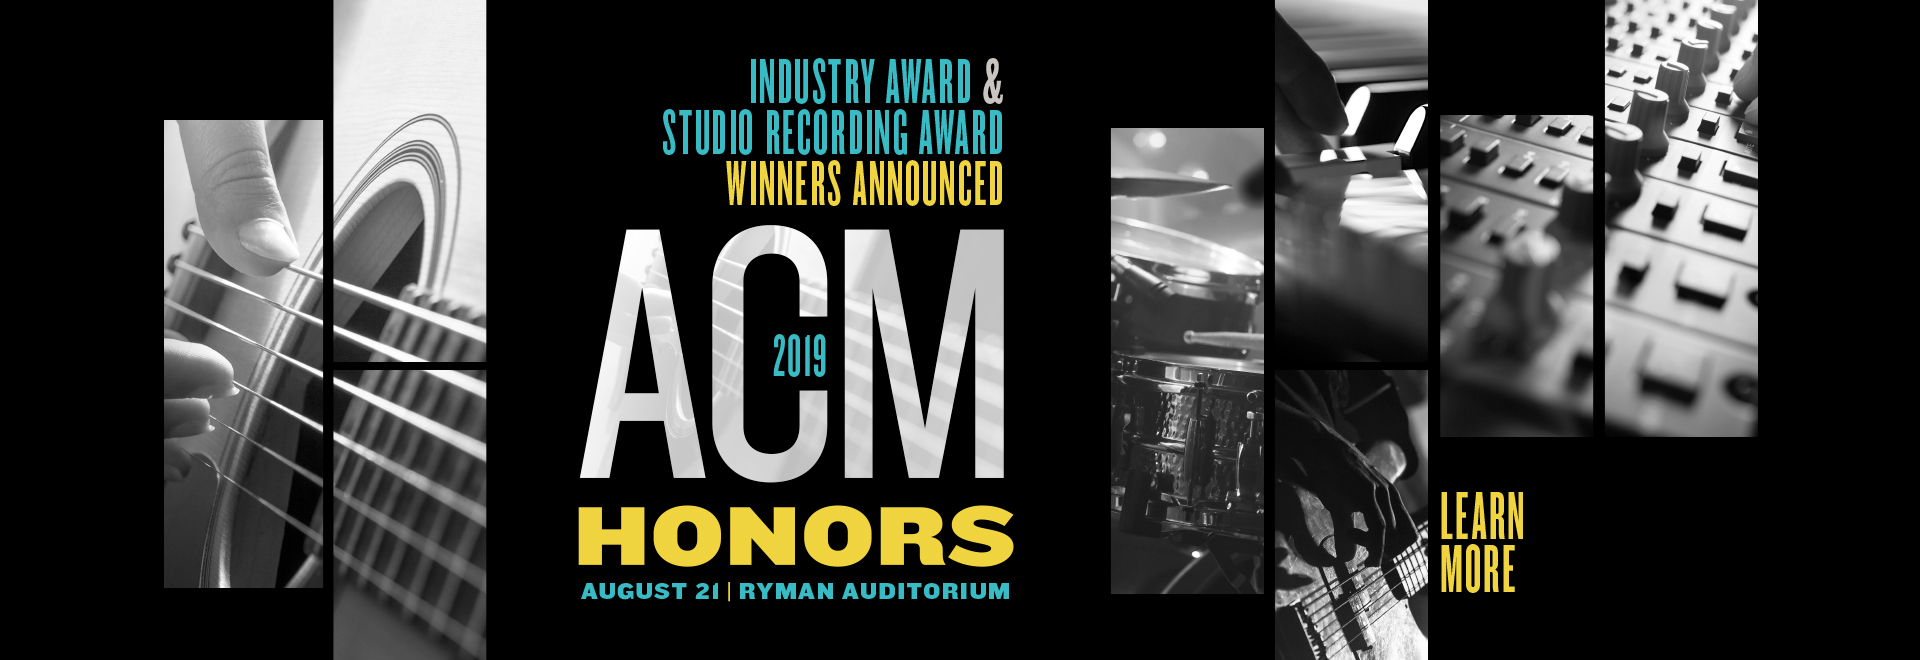 acm_Honors19_SRA_Indy_Announce_Rotators_LL_1920x660_rotator.jpg